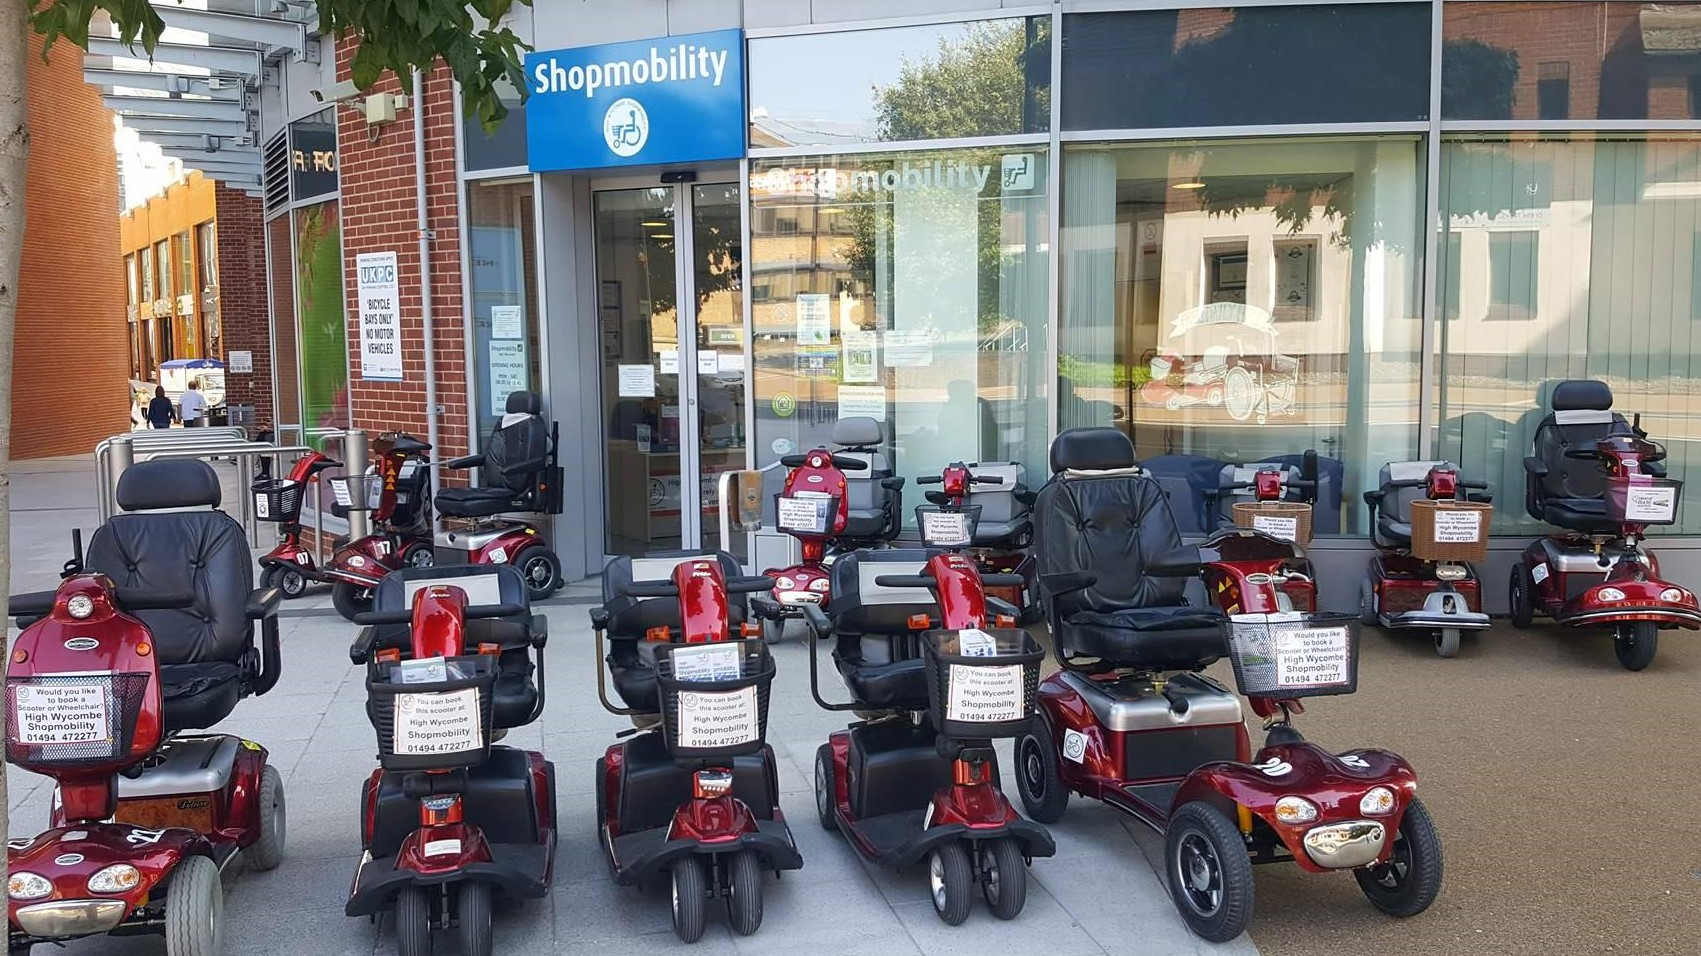 High Wycombe ShopMobility: ShopMobility UK Scheme of the Month (October 2021)